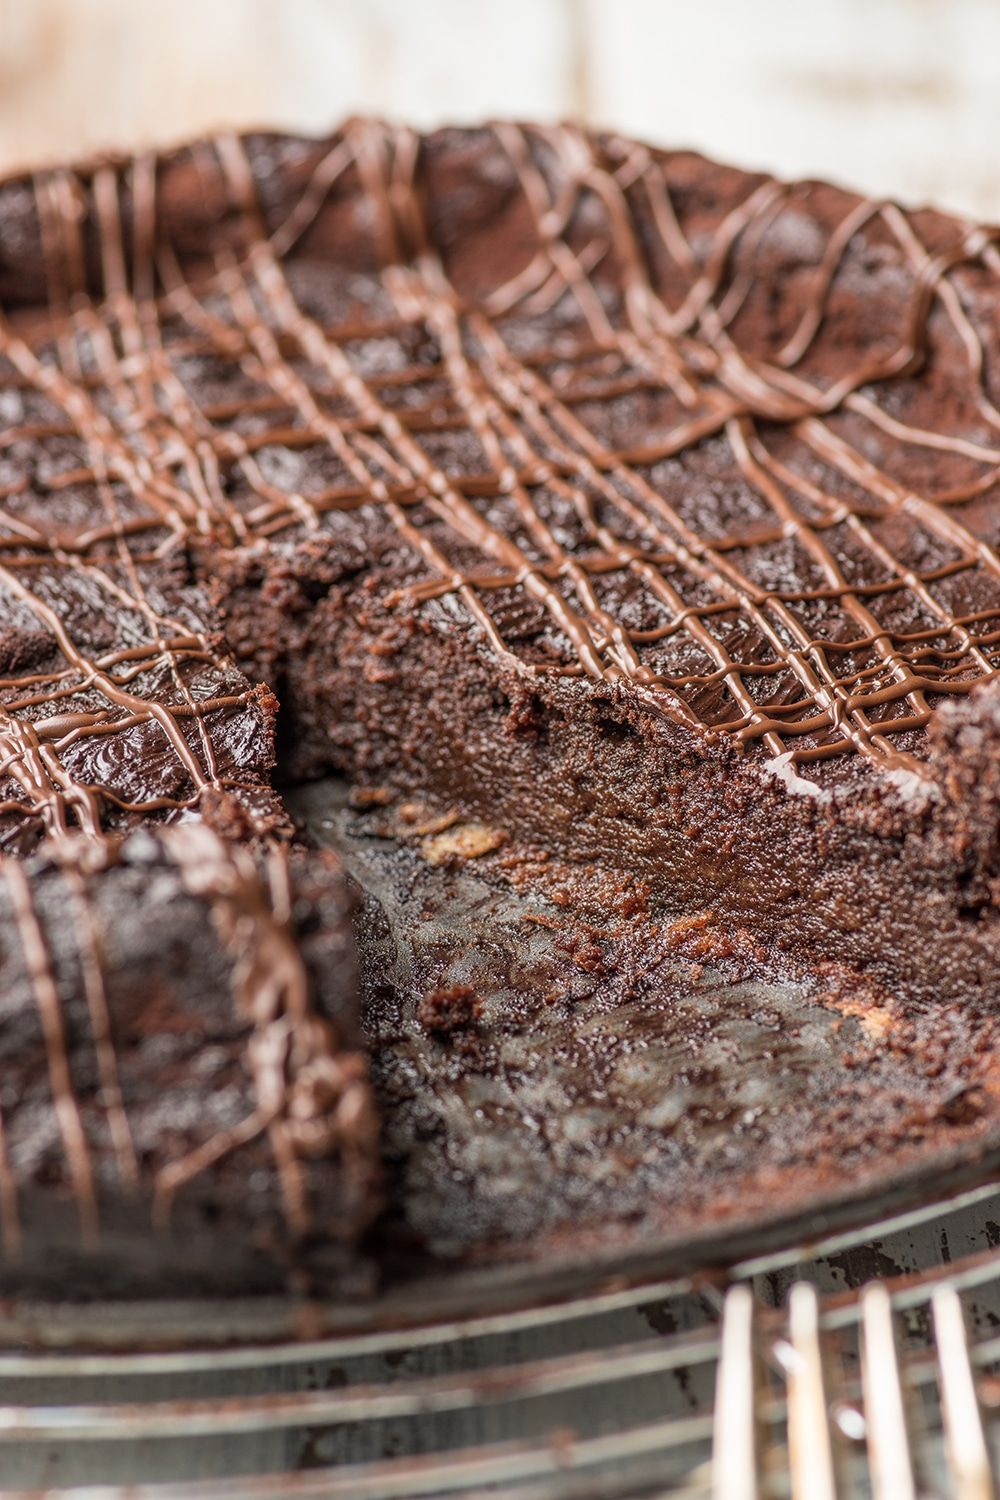 chocolate torte with a piece removed, up close shot to show the inside fudgy texture